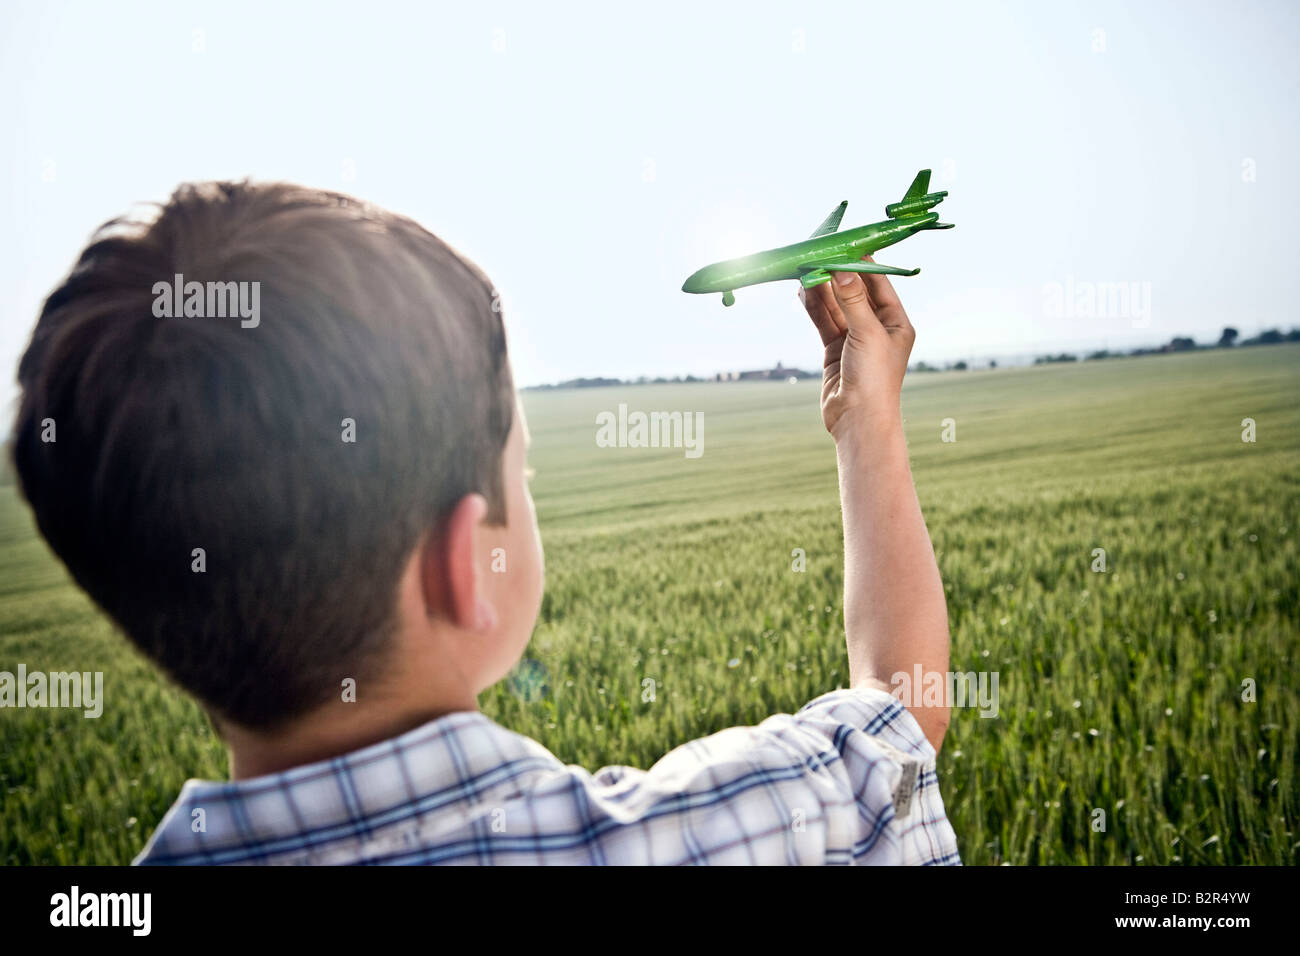 Boy playing with toy plane Stock Photo